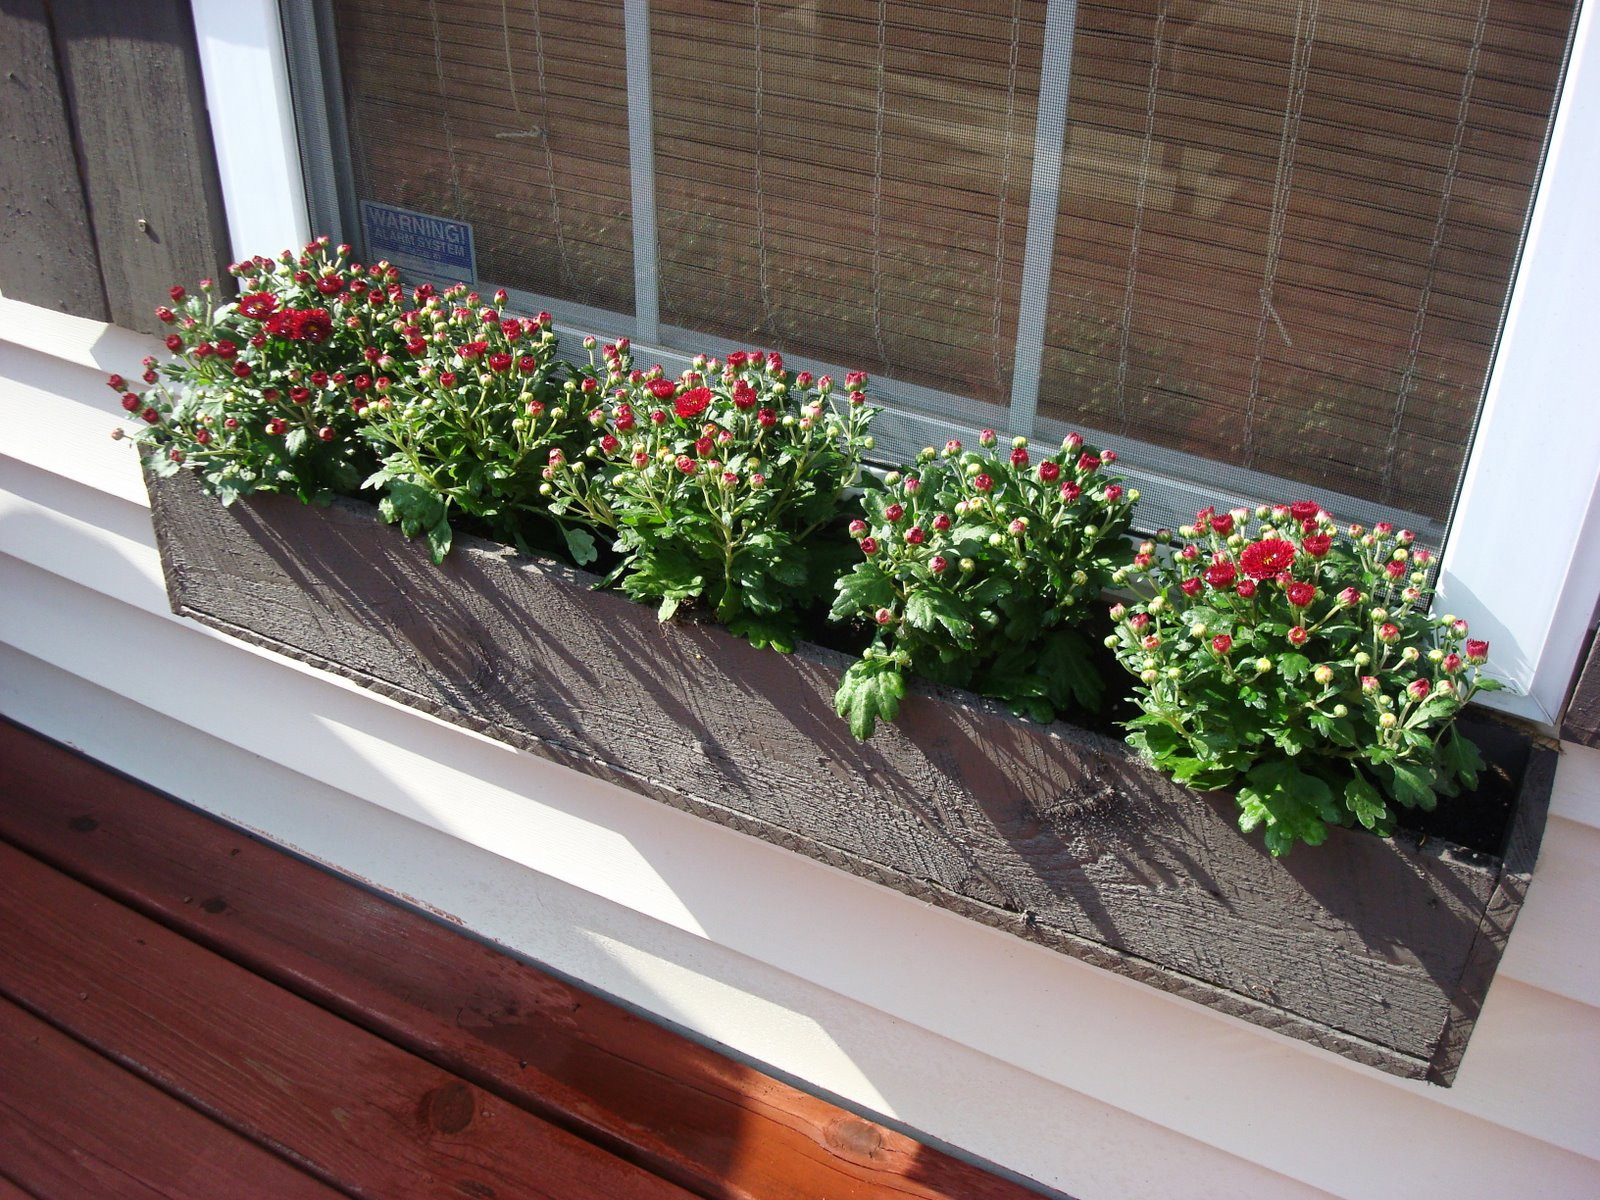 Best ideas about Window Boxes DIY . Save or Pin 12 Gorgeous DIY Window Box Planters Now.